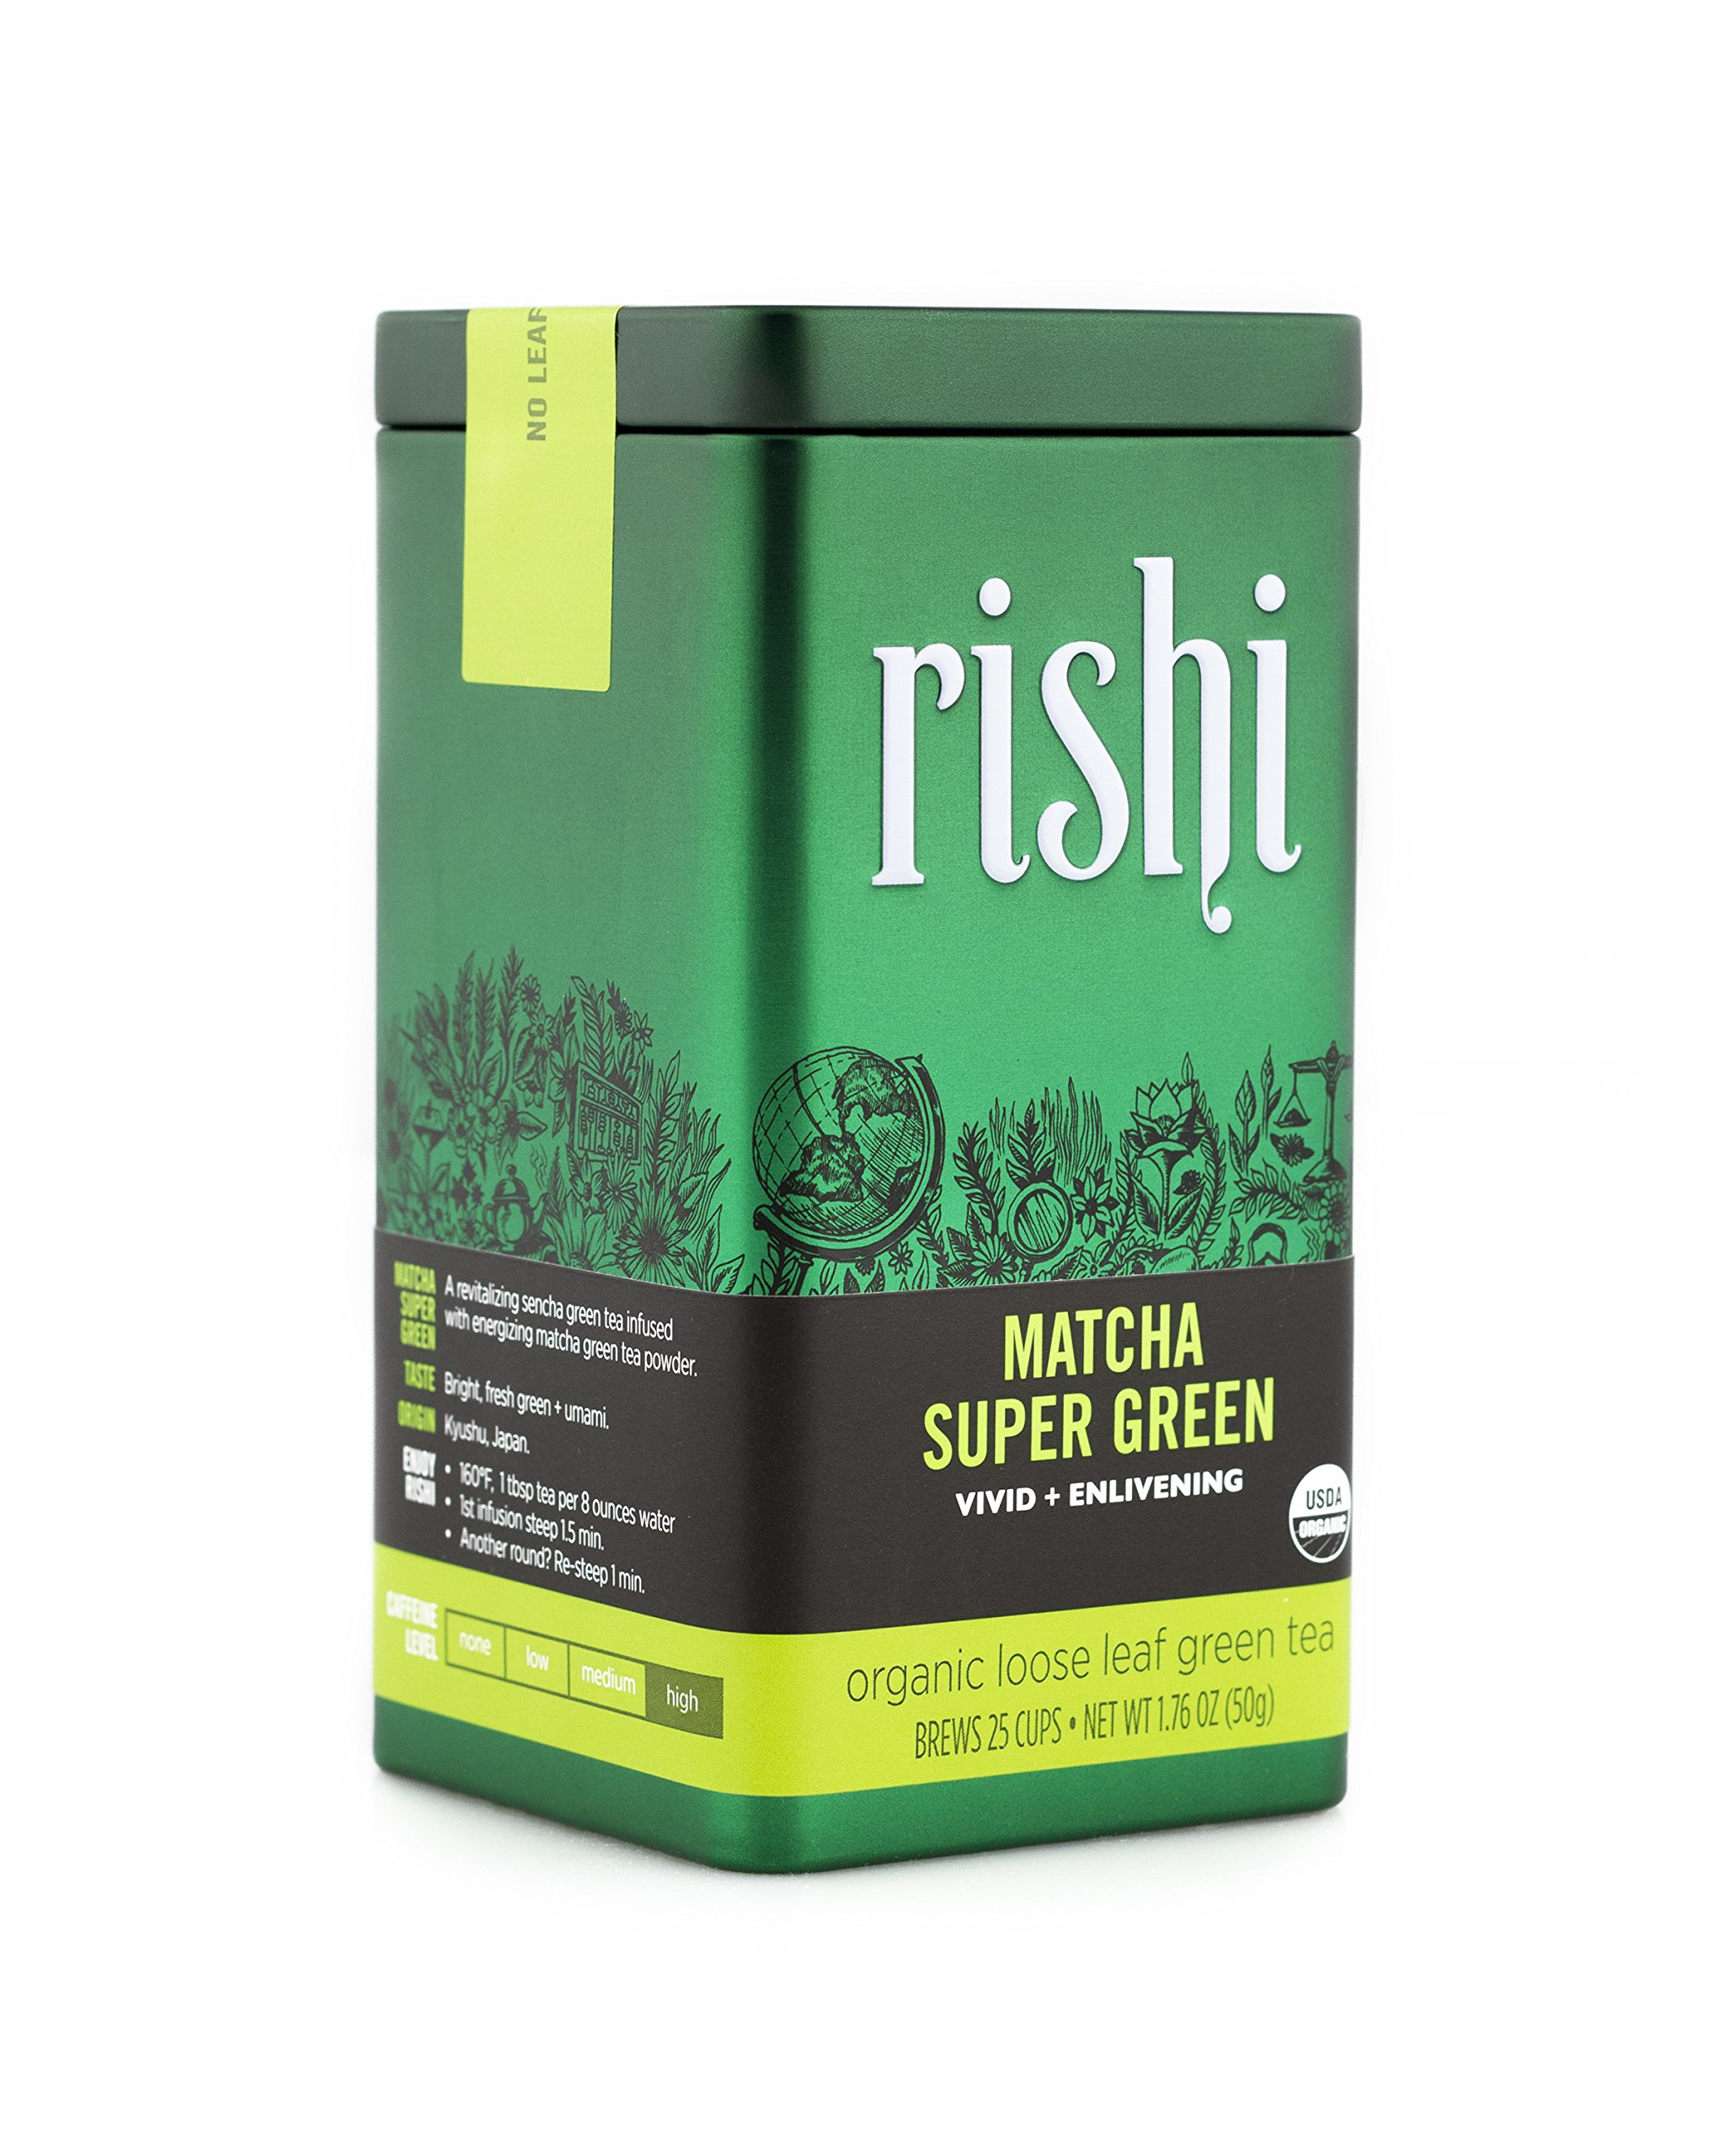 Rishi Matcha Super Green Tea, Organic Loose Leaf Tea, 1.76 Oz Tin